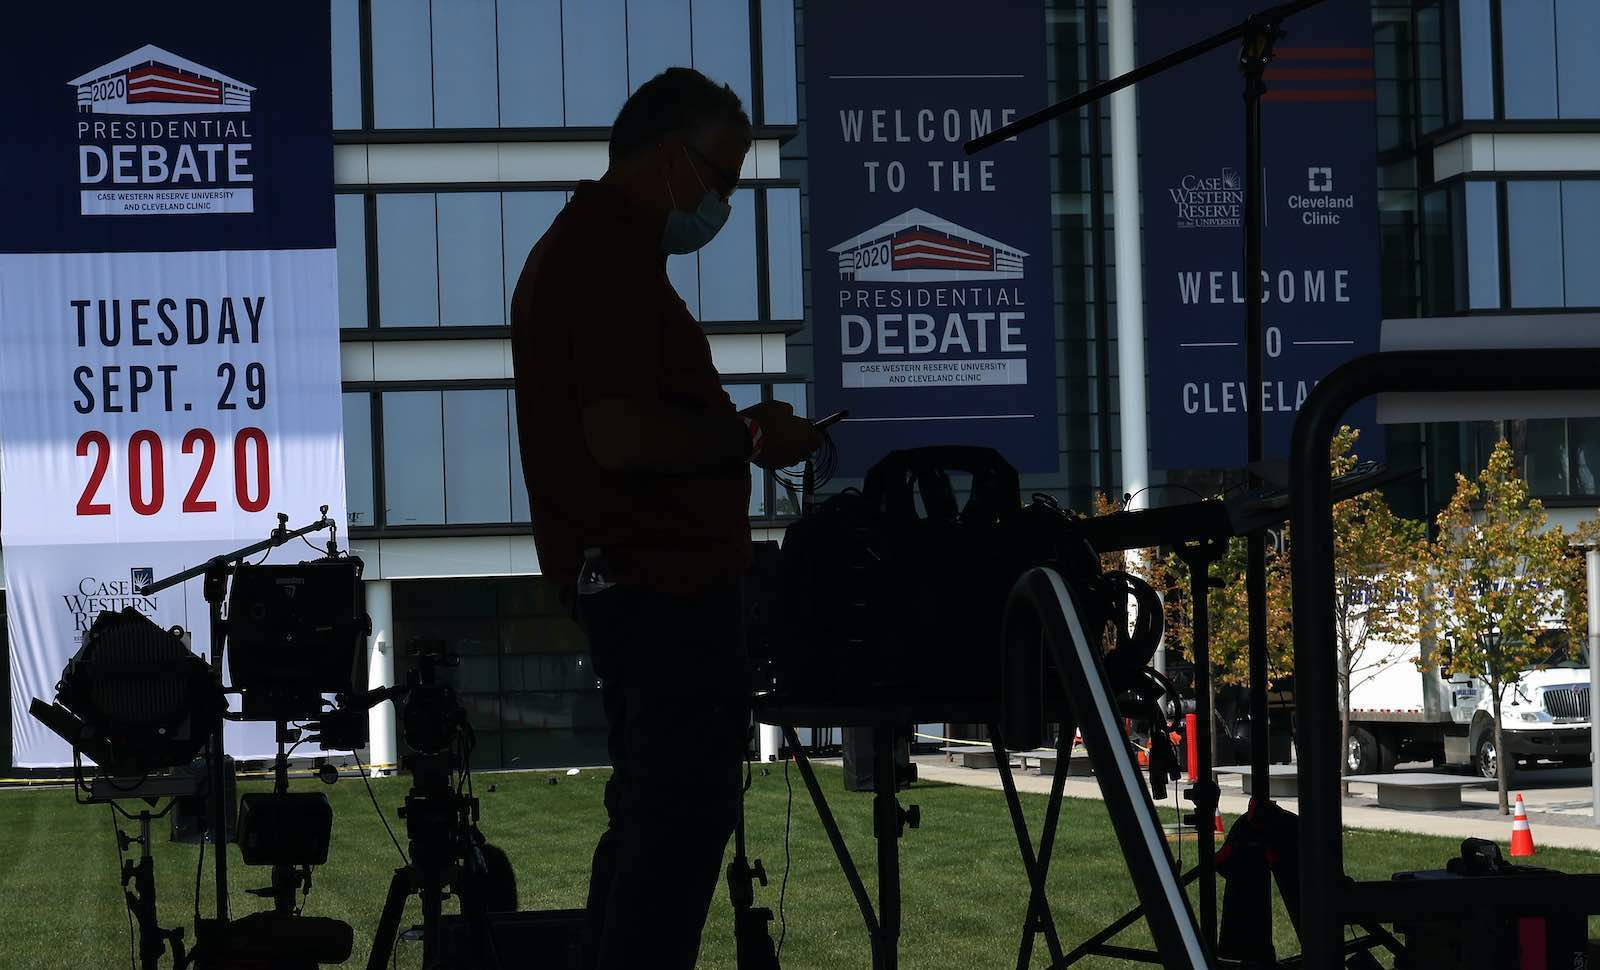 Media prepare for the first debate between President Donald Trump and Democratic nominee Joe Biden, to be held 29 September in Cleveland, Ohio (Win McNamee/Getty Images)